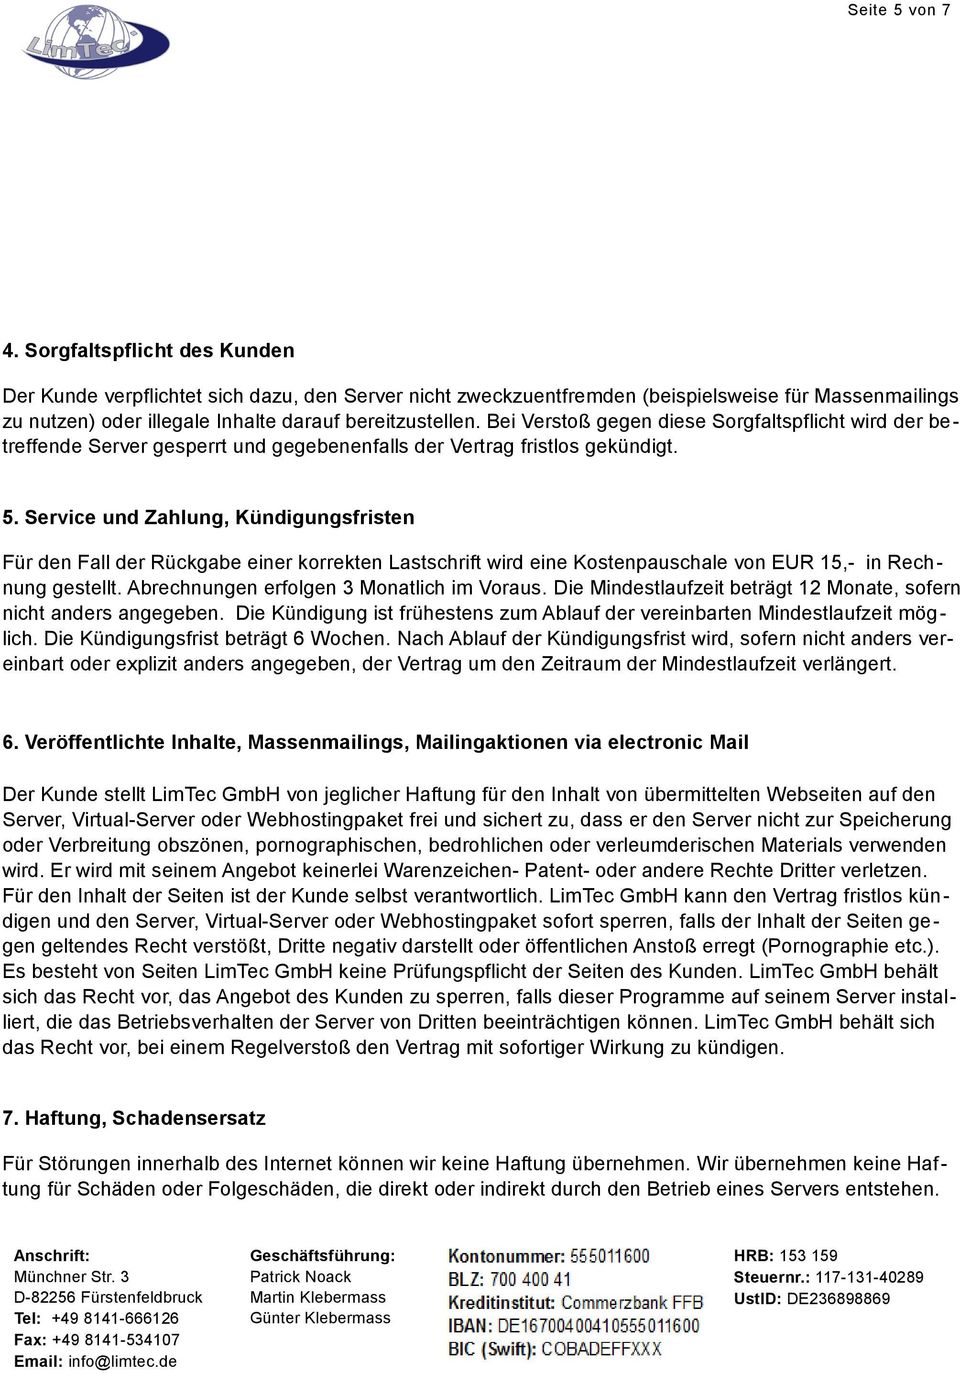 Tolle Managed Service Vertragsvorlage Ideen - Entry Level Resume ...